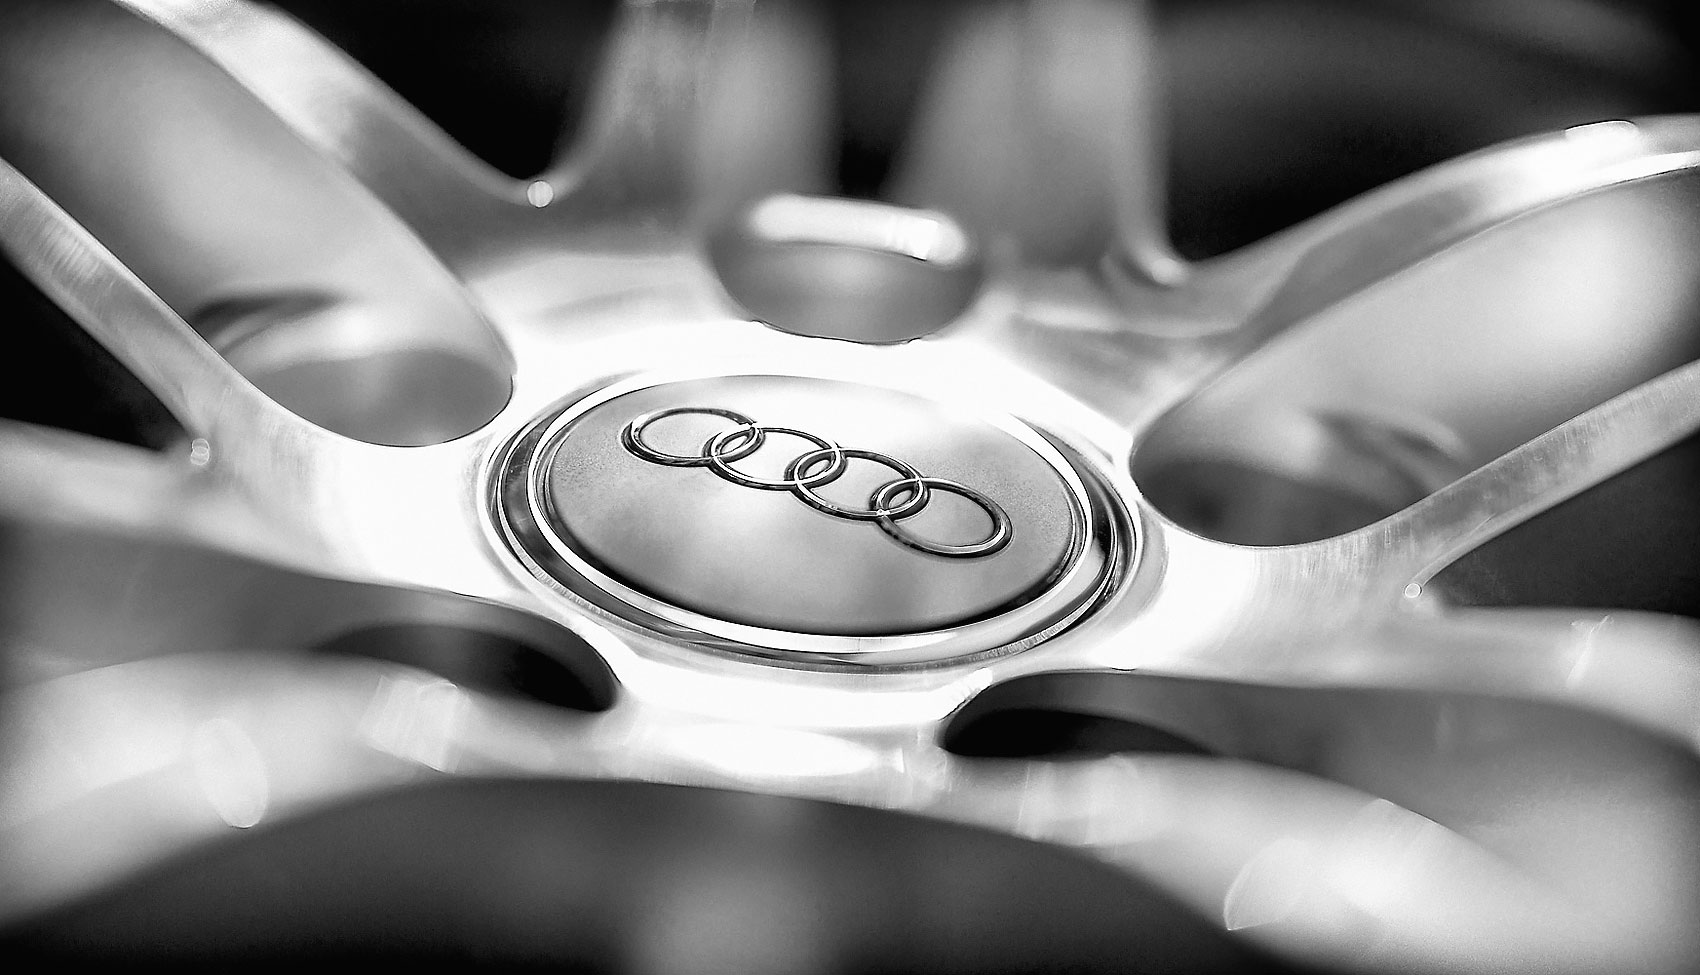 Editorial photography black and white abstract of Audi R8 wheel by Phoenix commercial photographer Jason Koster.